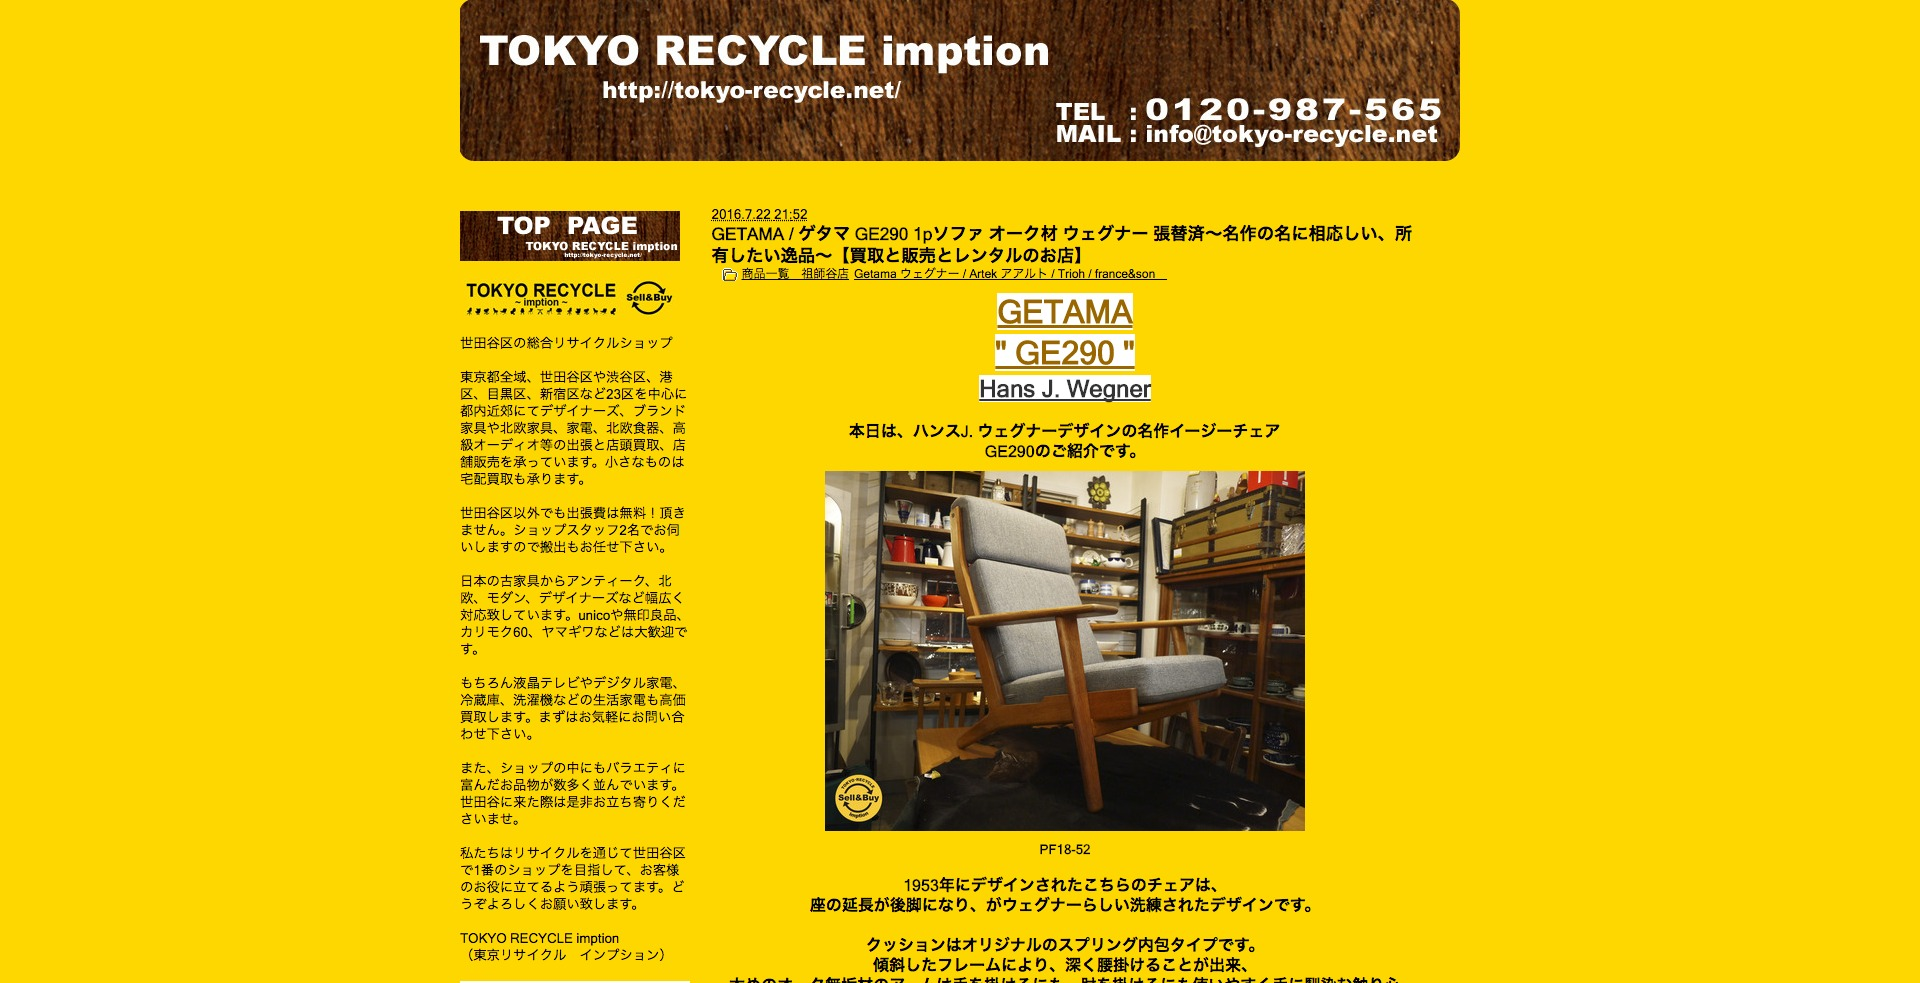 FireShot Capture 026 - 総合リサイクルショップは東京都世田谷区のTOKYORE_ - http___tokyo-recycle.net_archives_1683225.html